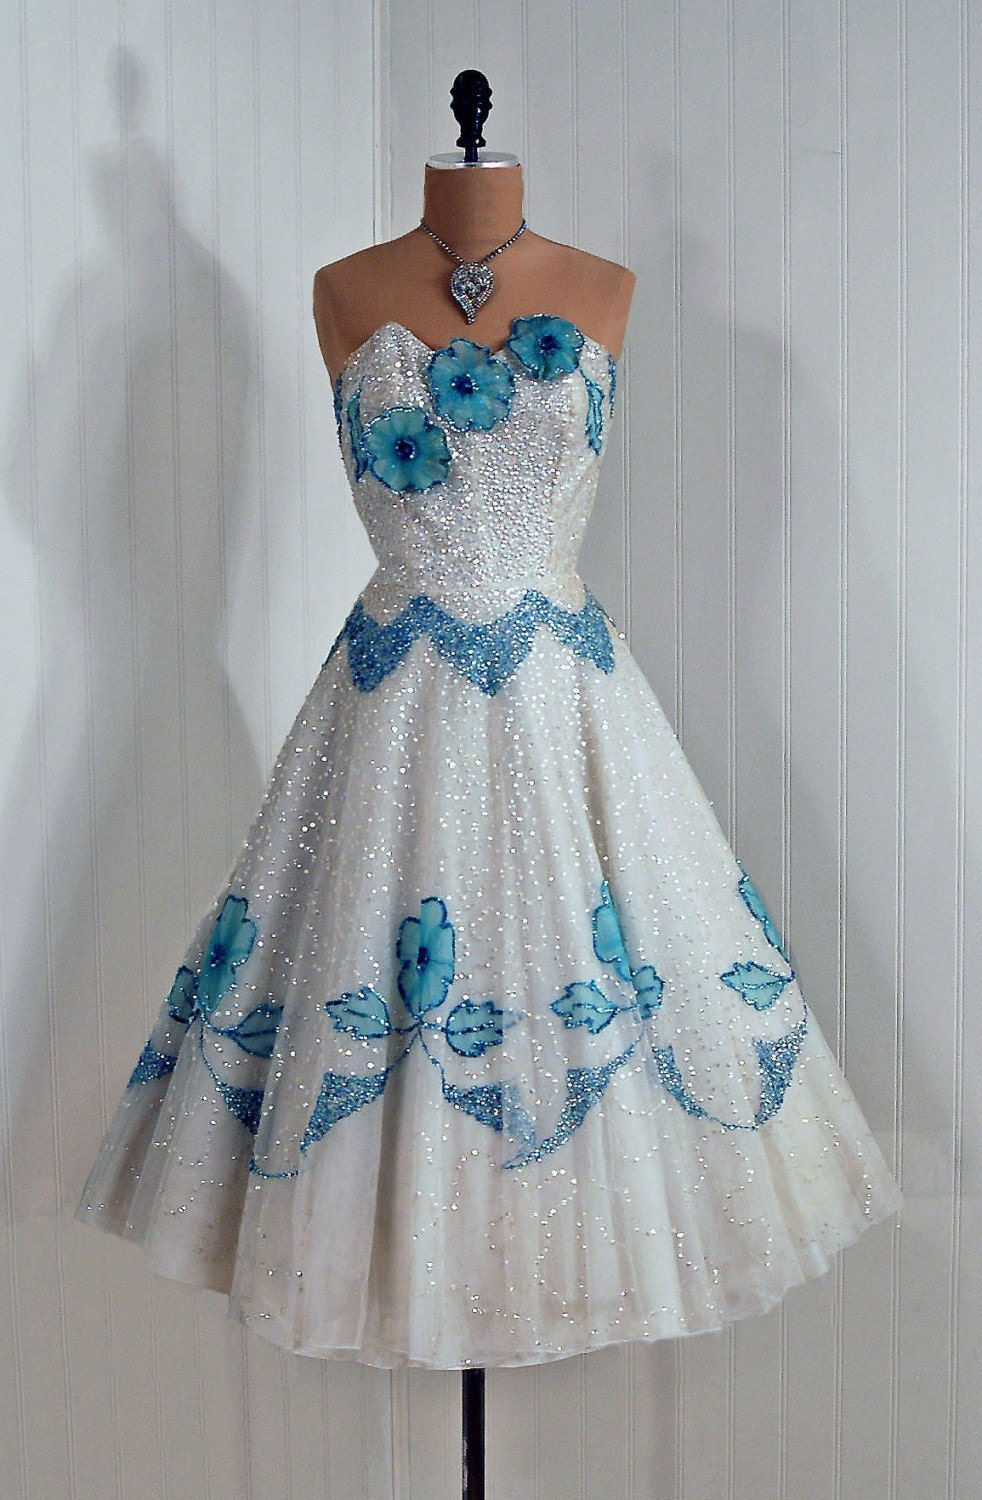 1950's Vintage Strapless Ivory-White and Baby-Blue Heavily-Sequined Tulle Couture Floral-Appliques Princess Bombshell Circle-Skirt Wedding Party Cocktail Dress